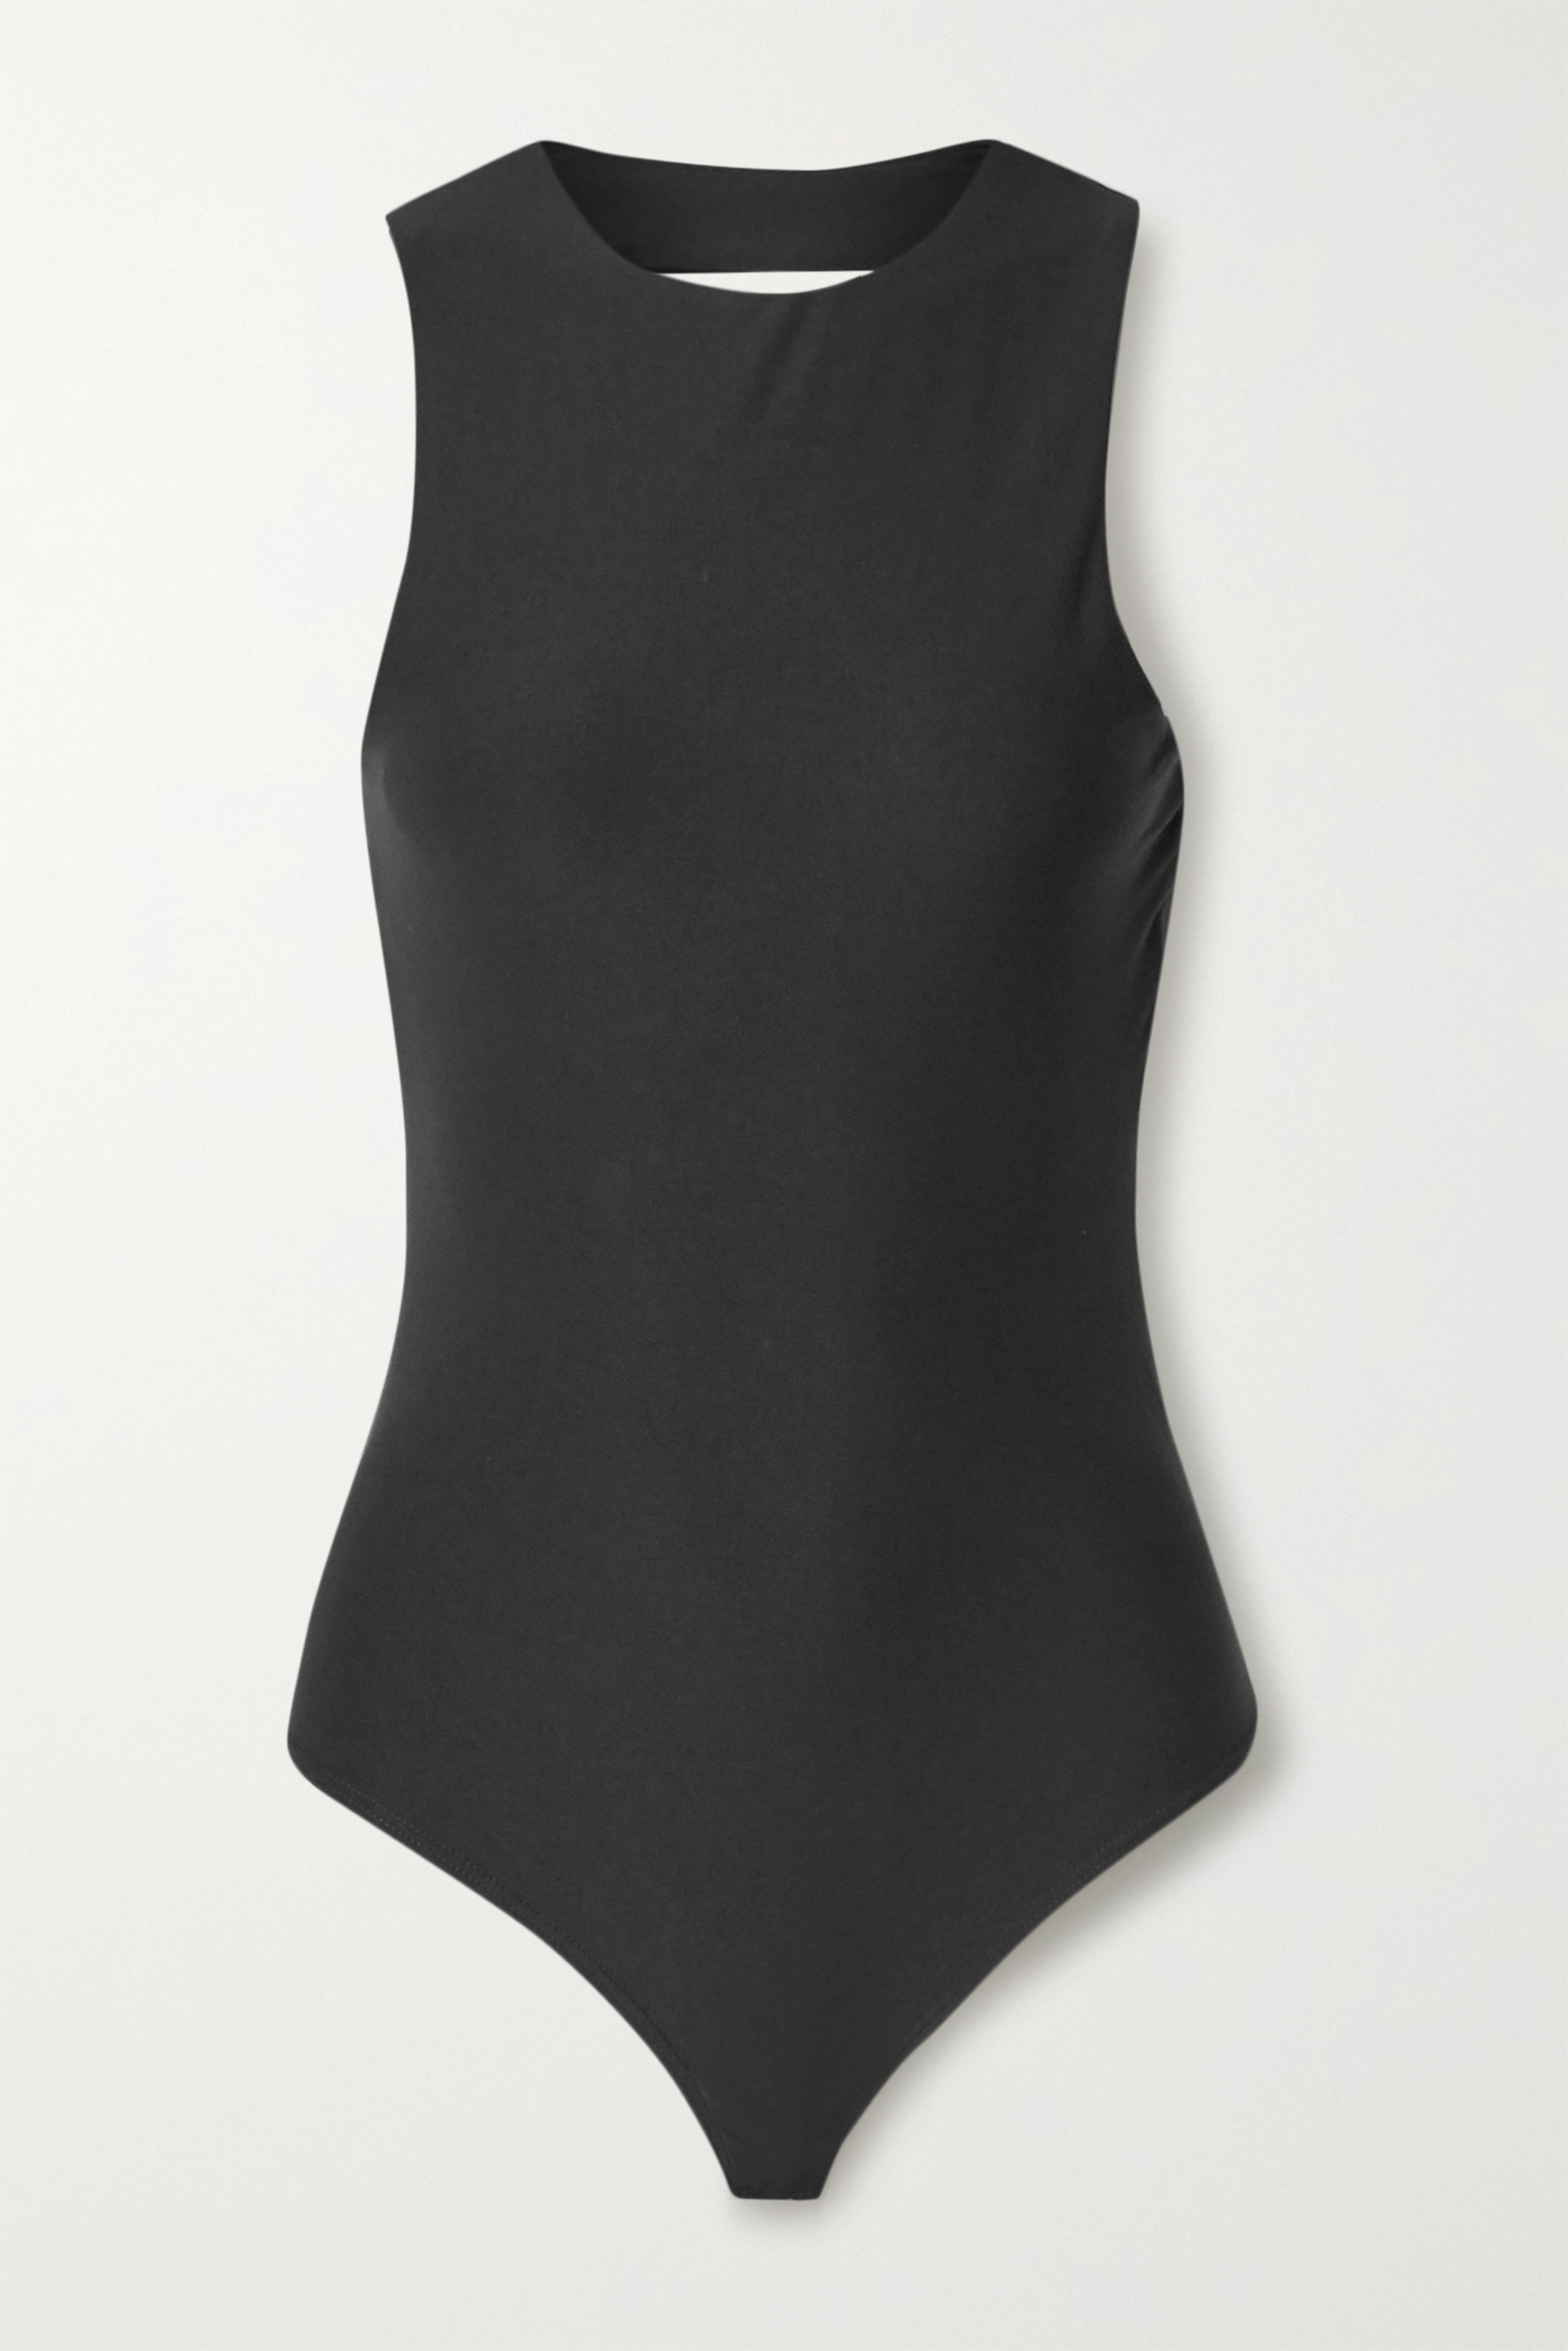 Alix NYC Chase open-back stretch-jersey thong bodysuit